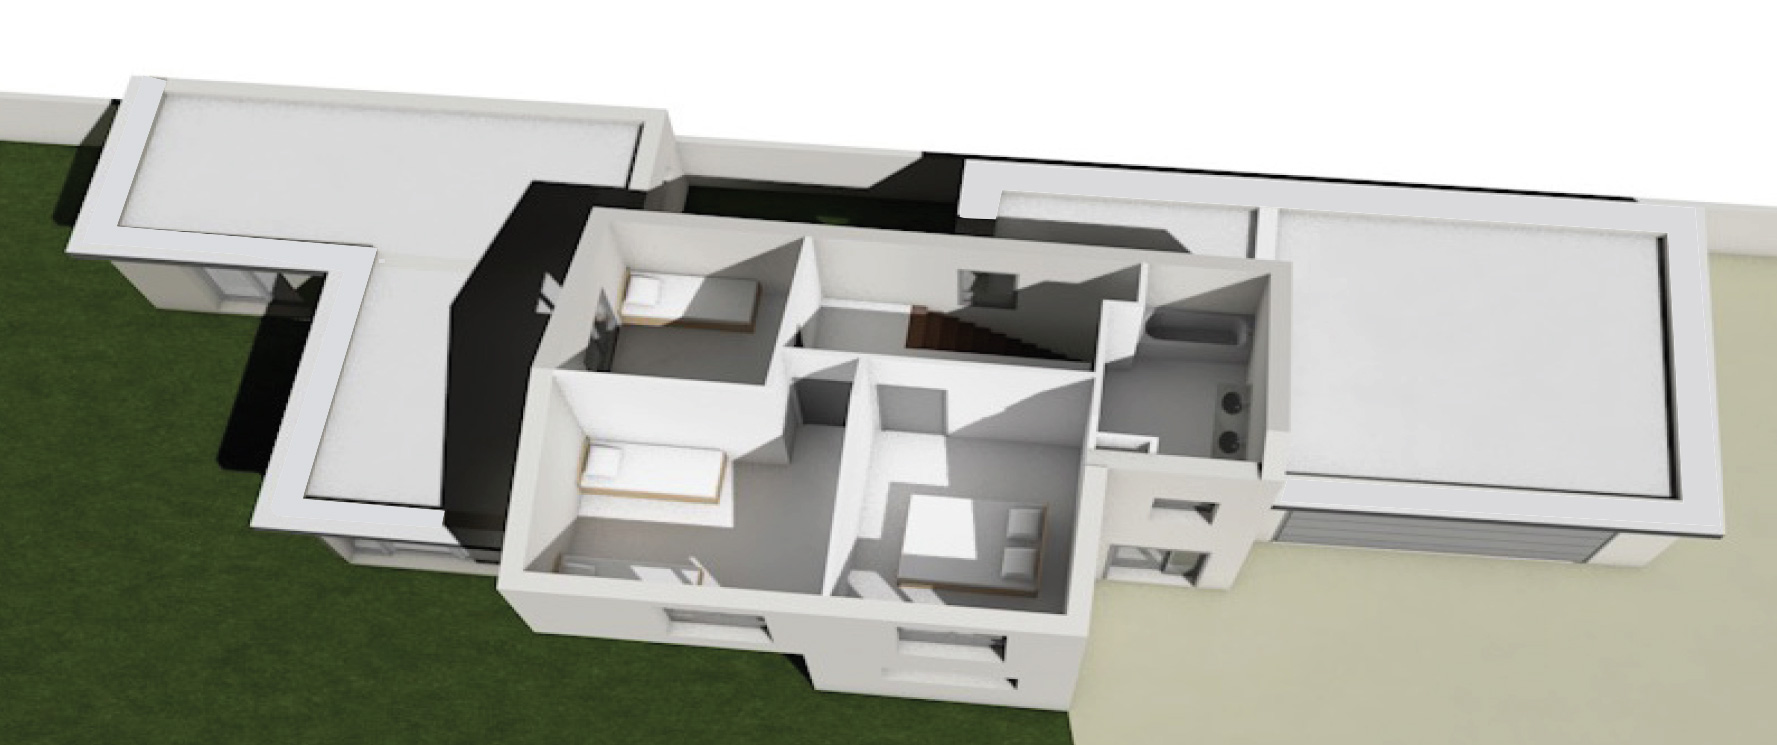 Plan Etage Mornant